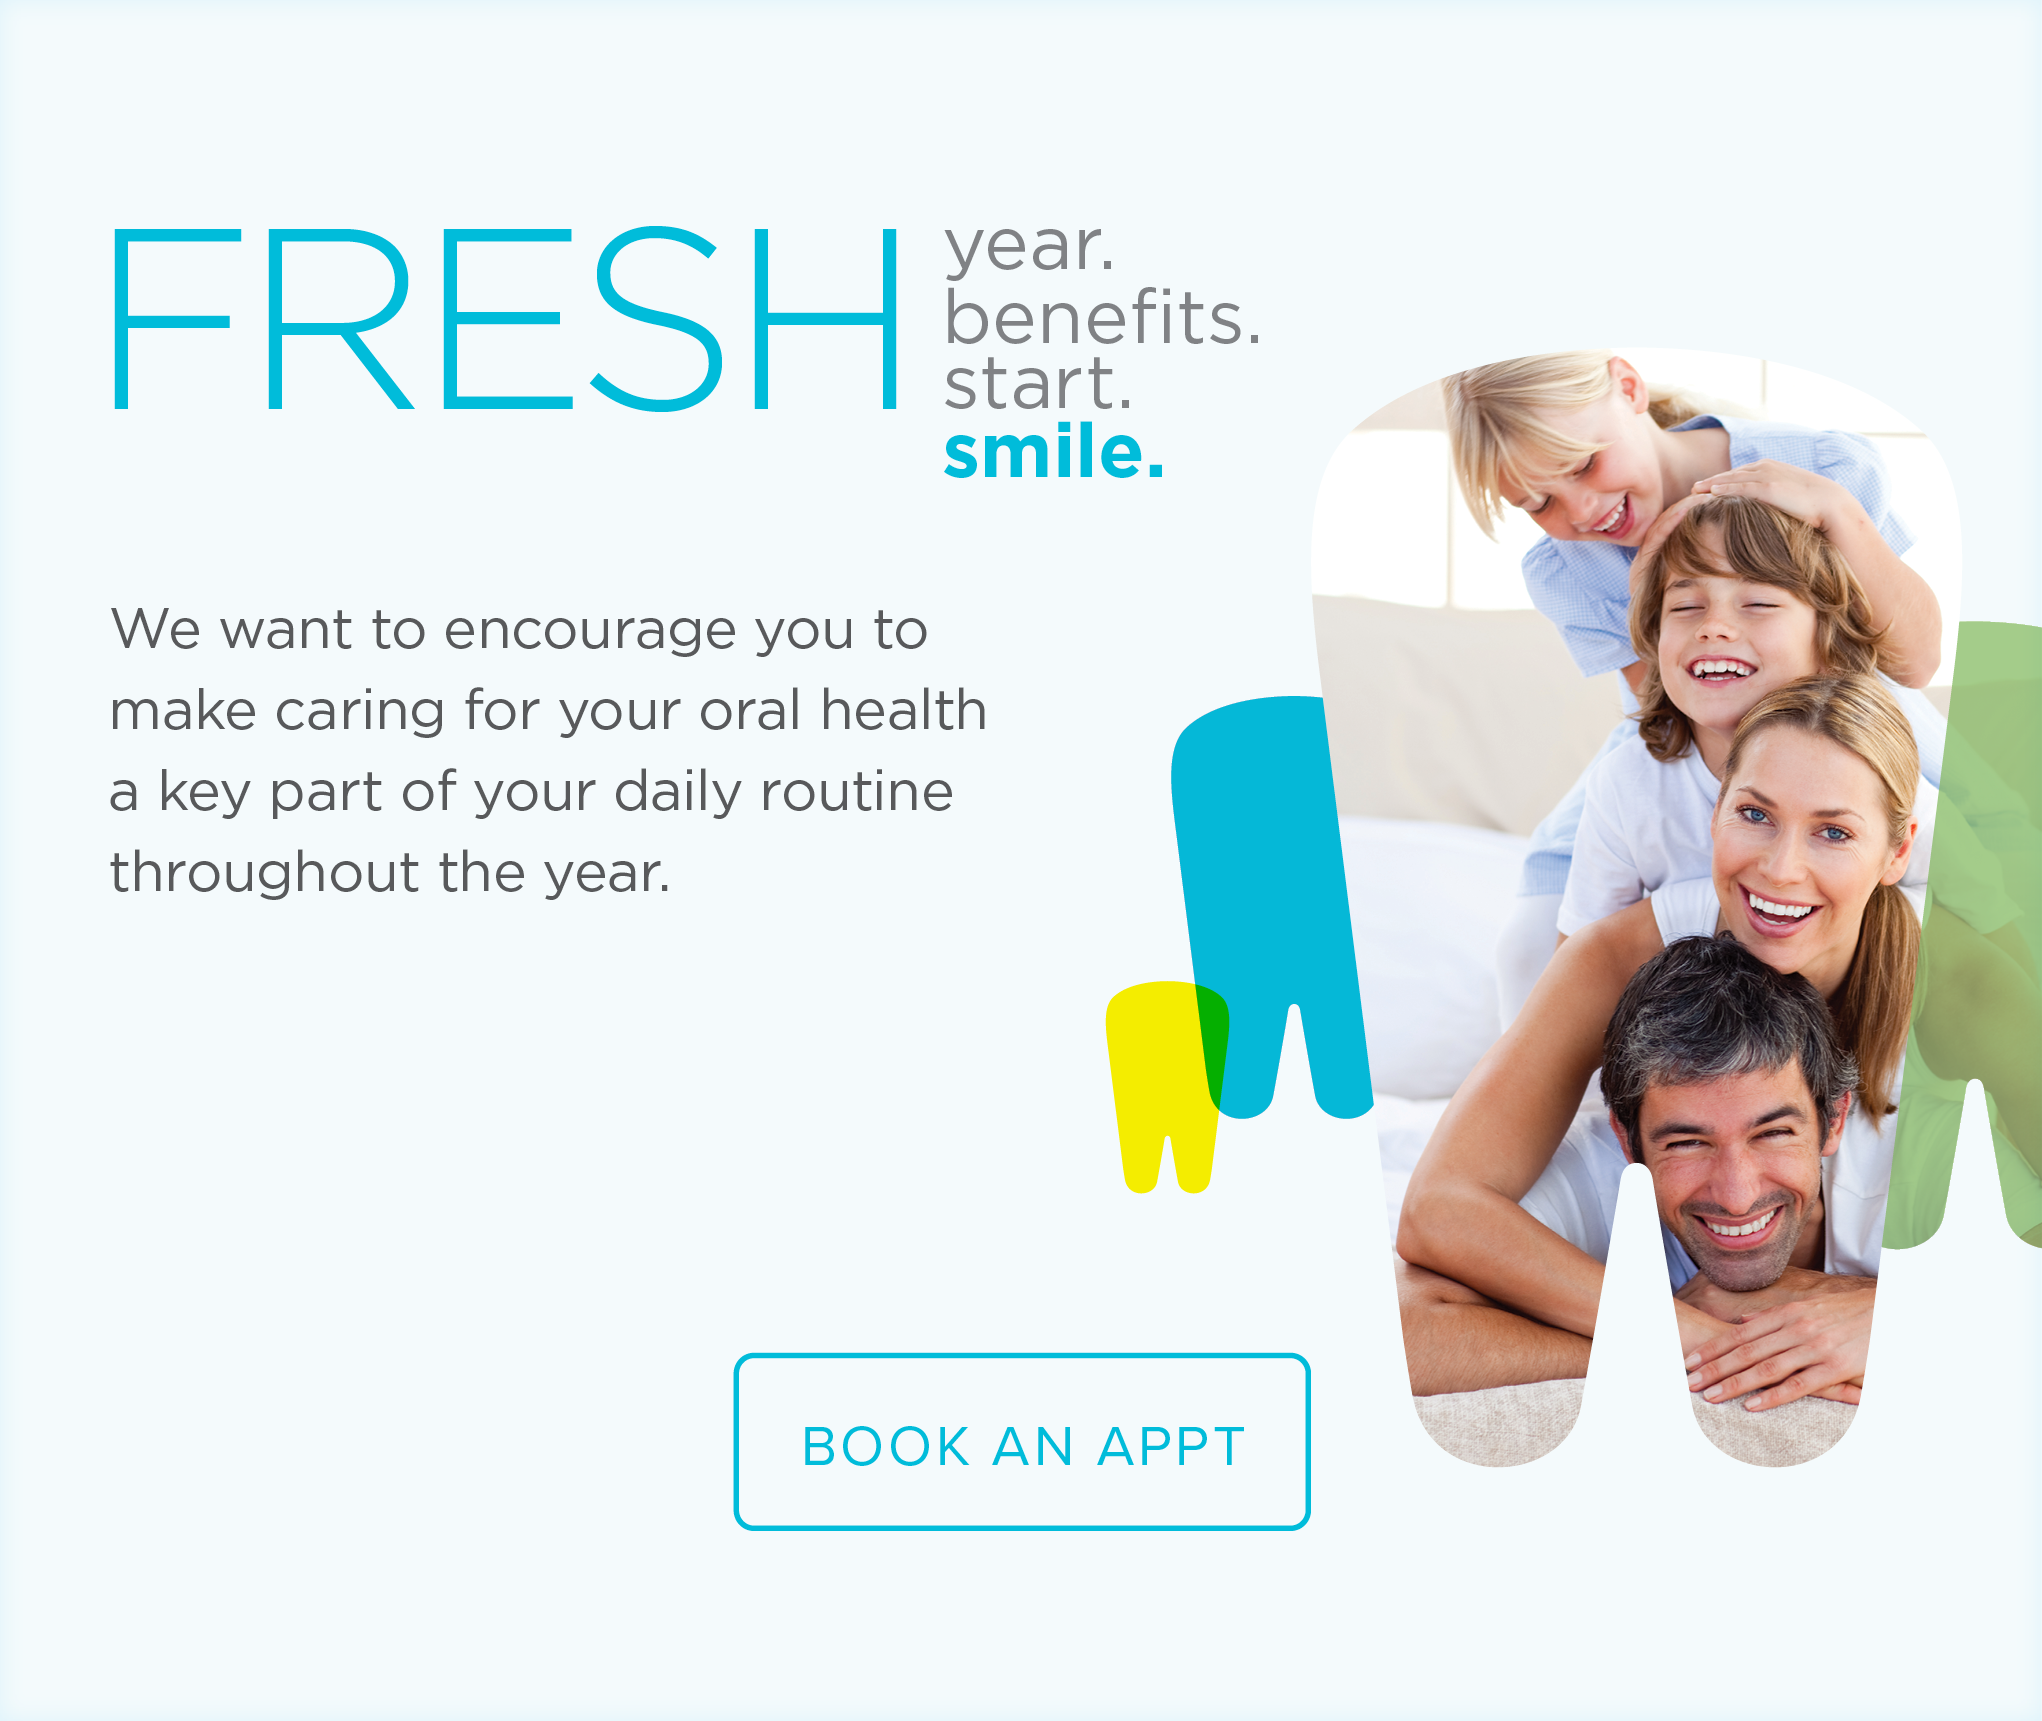 Rampart Dental Group - Make the Most of Your Benefits